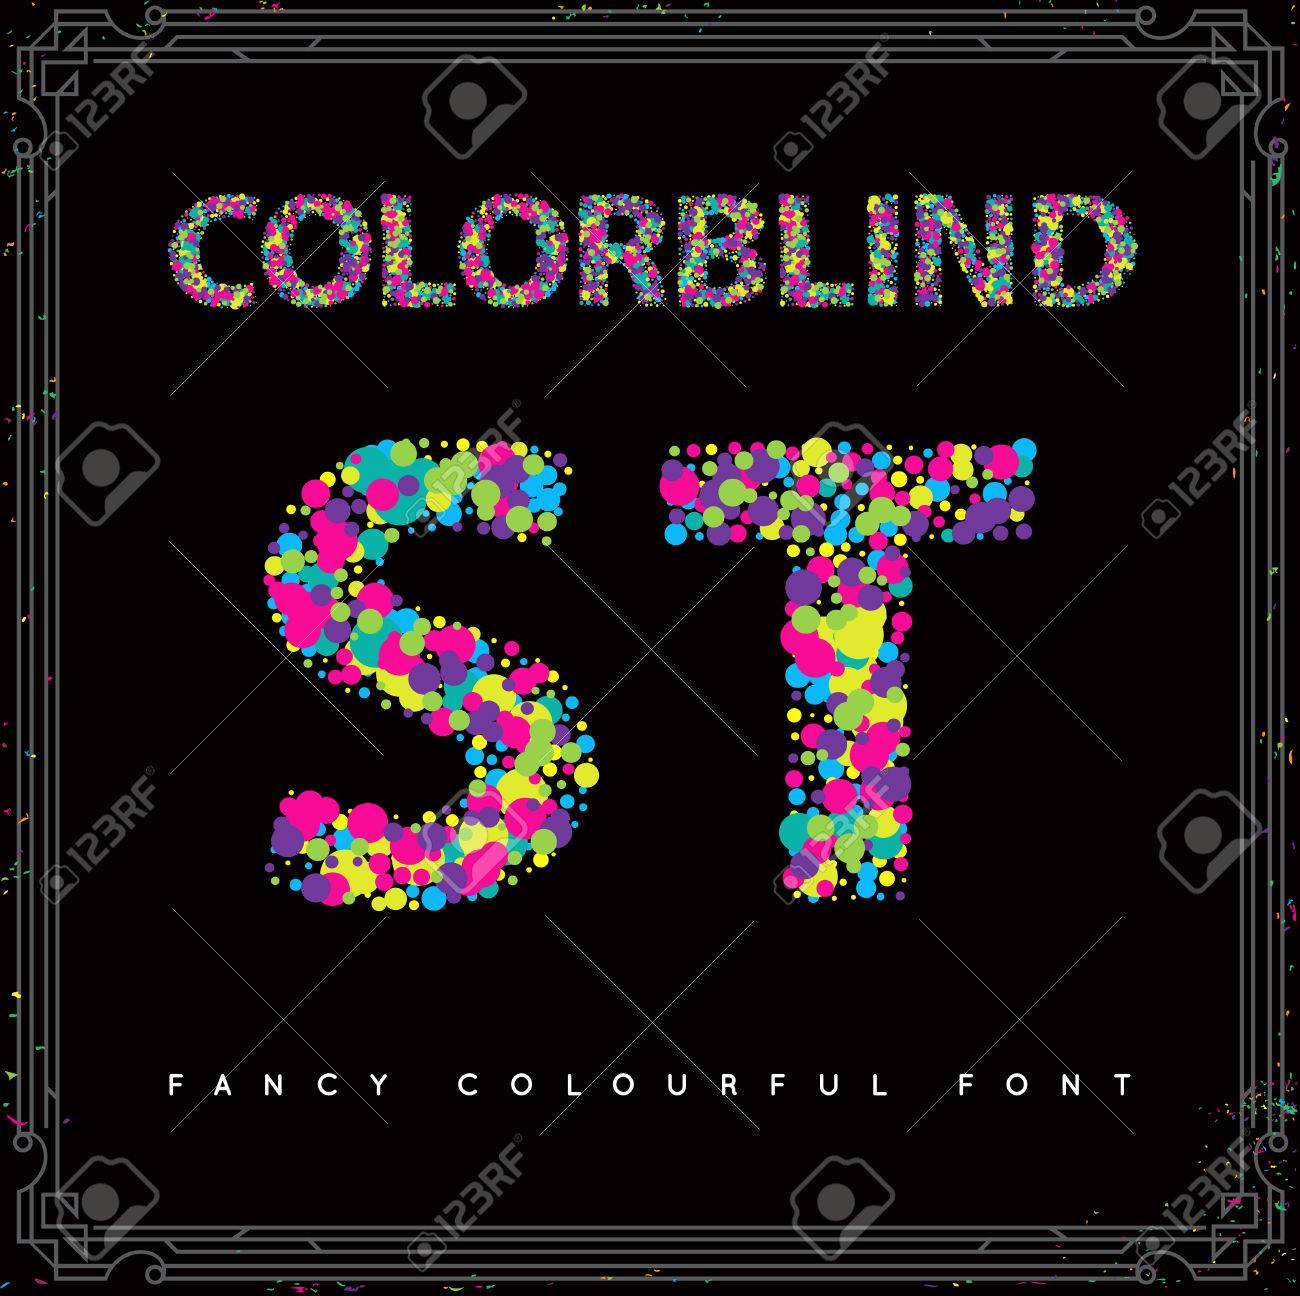 Set of Colorblind Style Font in Vector. Fresh trendy colors. - 63674949